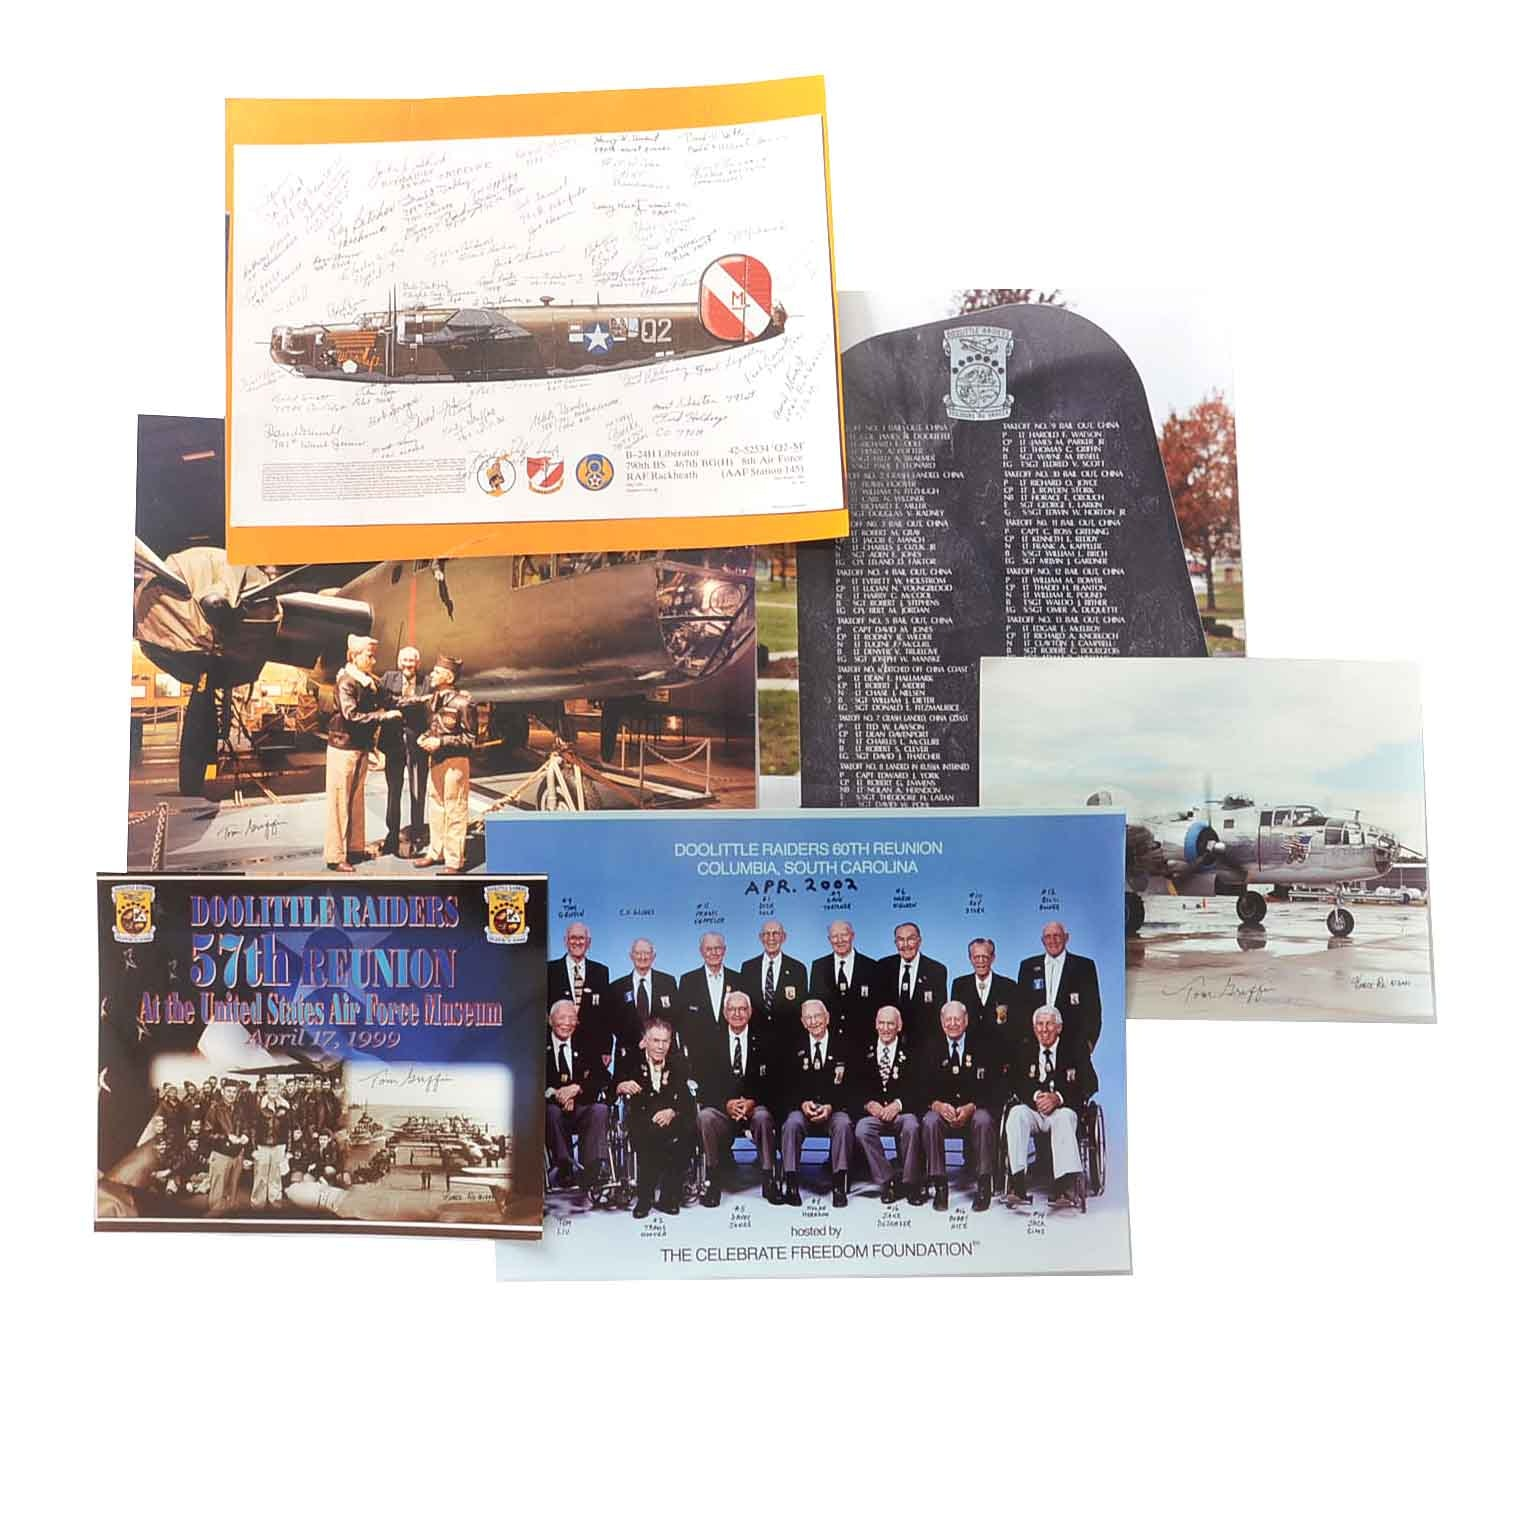 Vincent Re Collection of Photographs of Doolittle Raiders Memorabilia